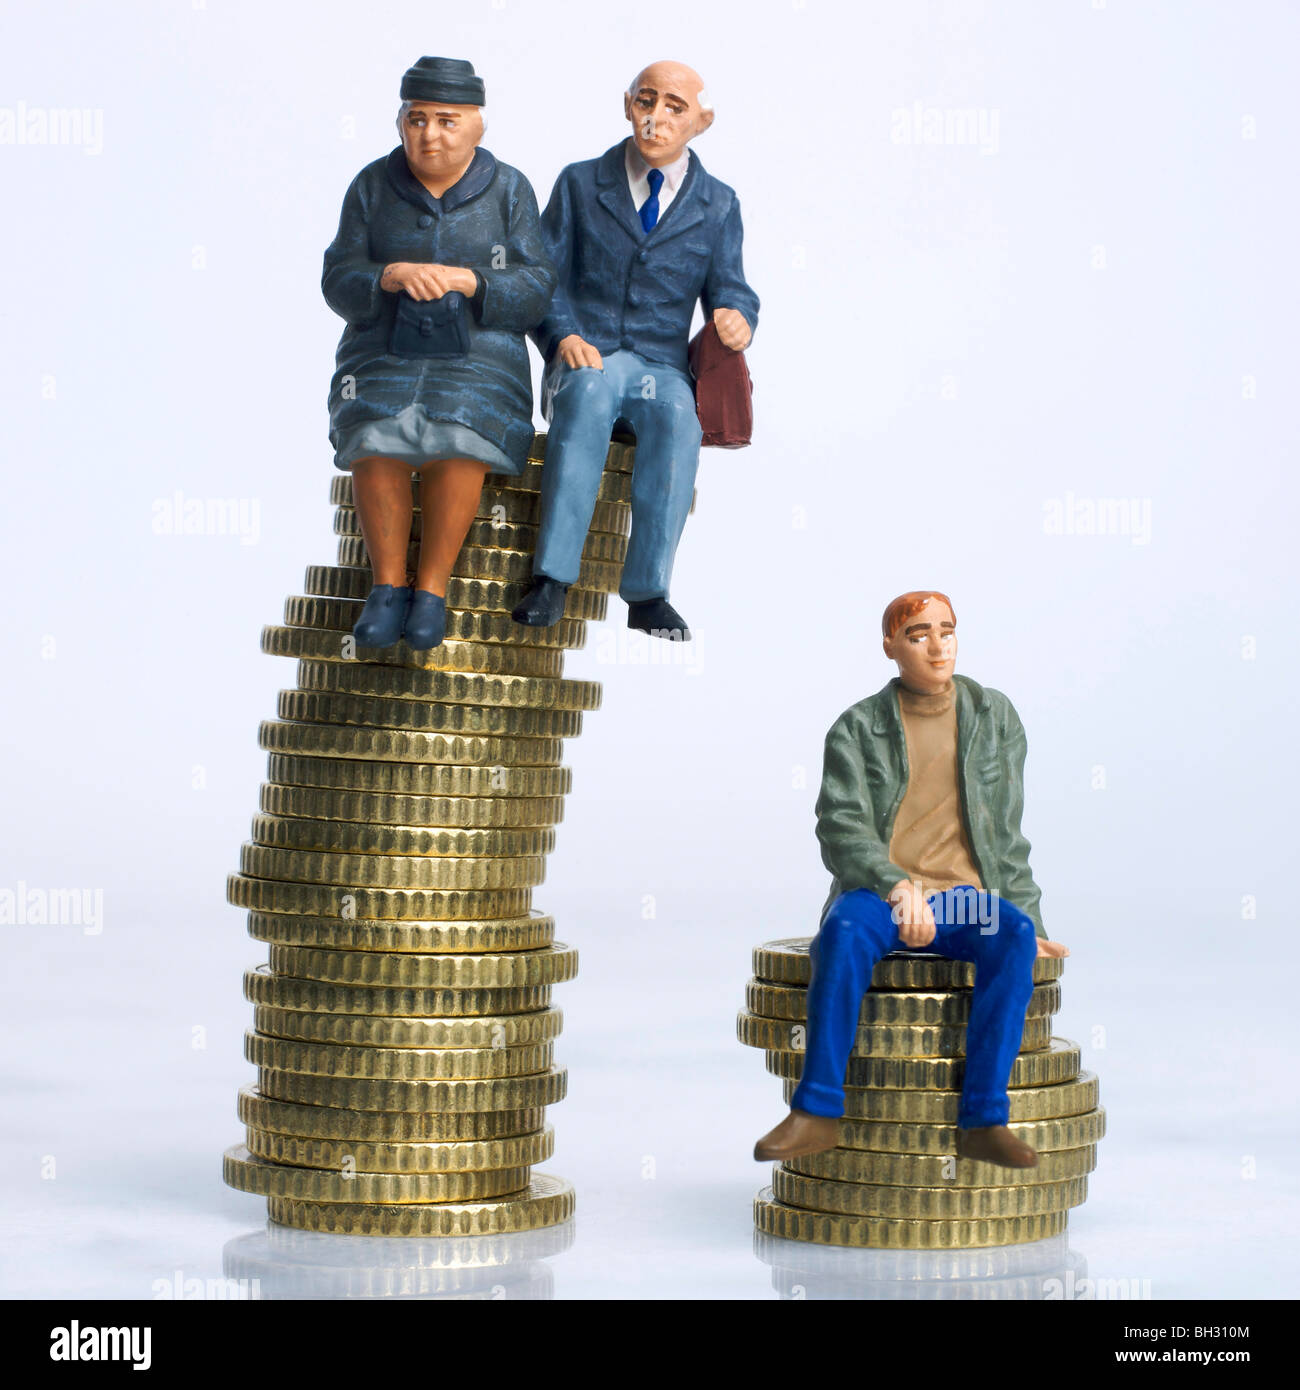 Old and young figures sitting on coins - inheritance / disparity in savings / pension money / old v young income - Stock Image